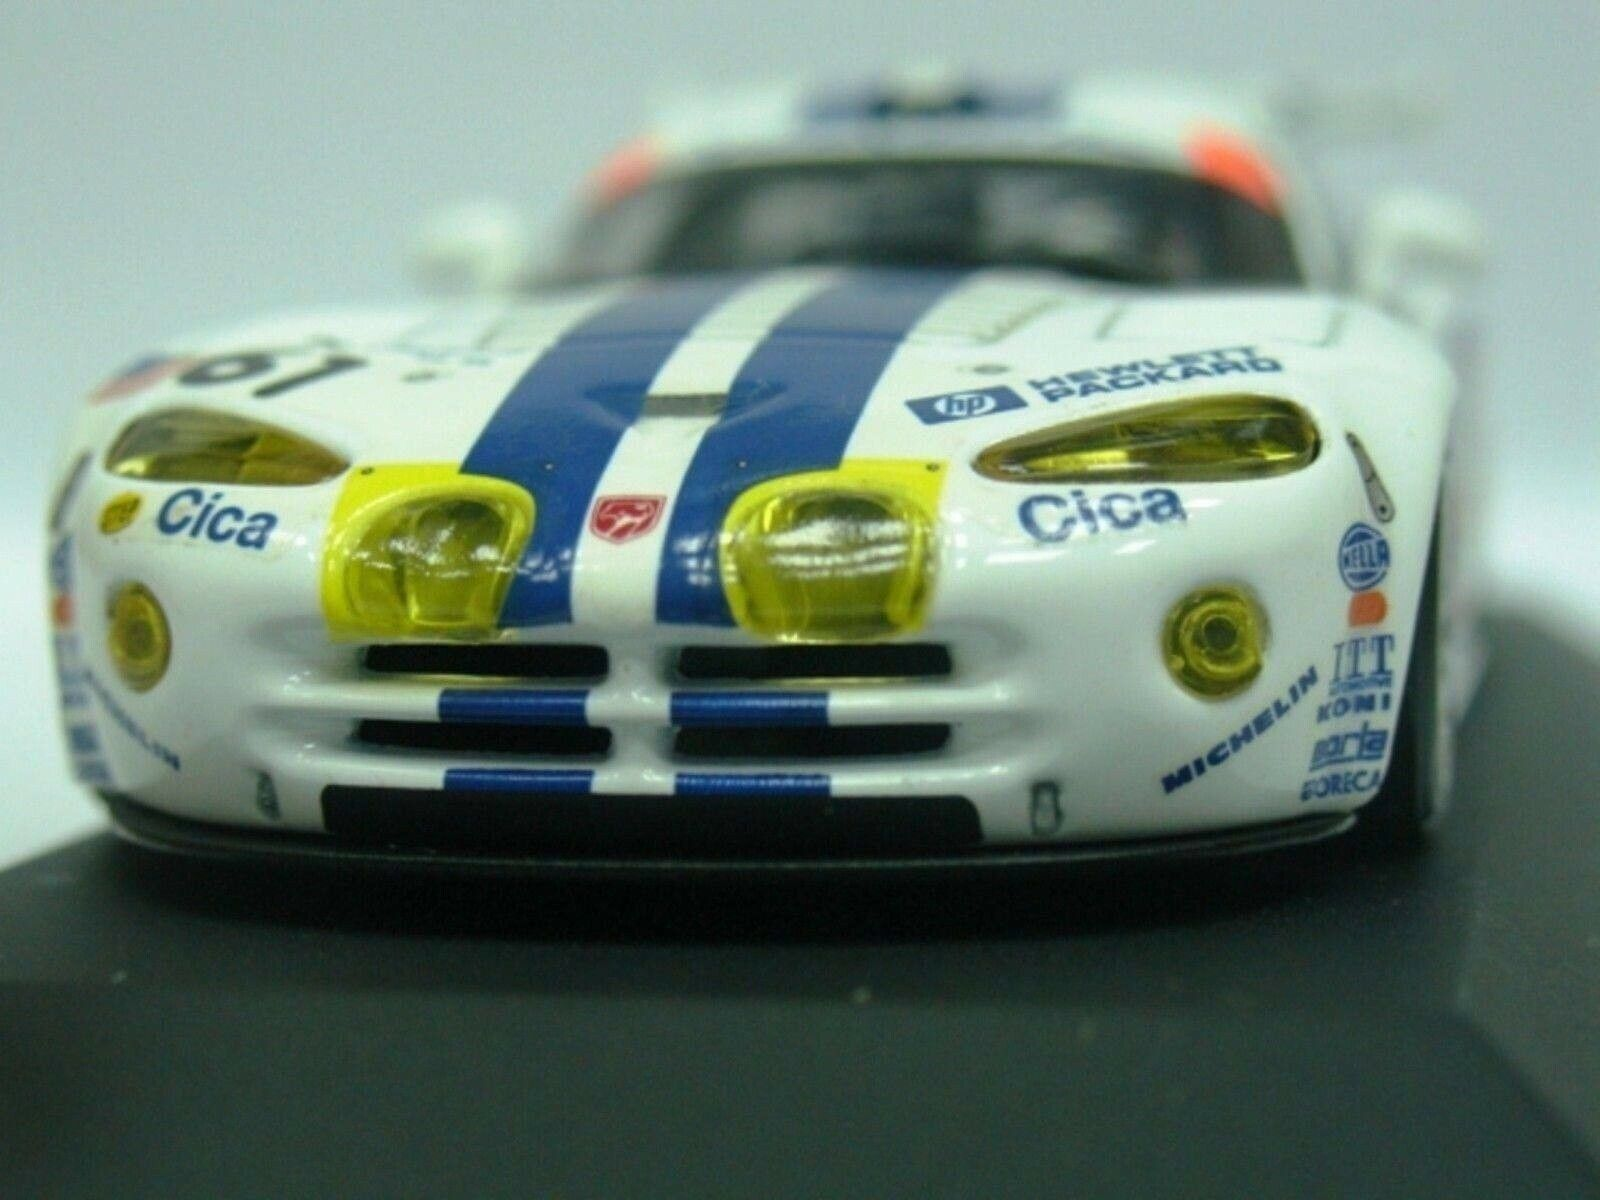 WOW EXTREMELY RARE Chrysler Viper 1997 GTS-R Beretta Le Mans 1 43 Minichamps